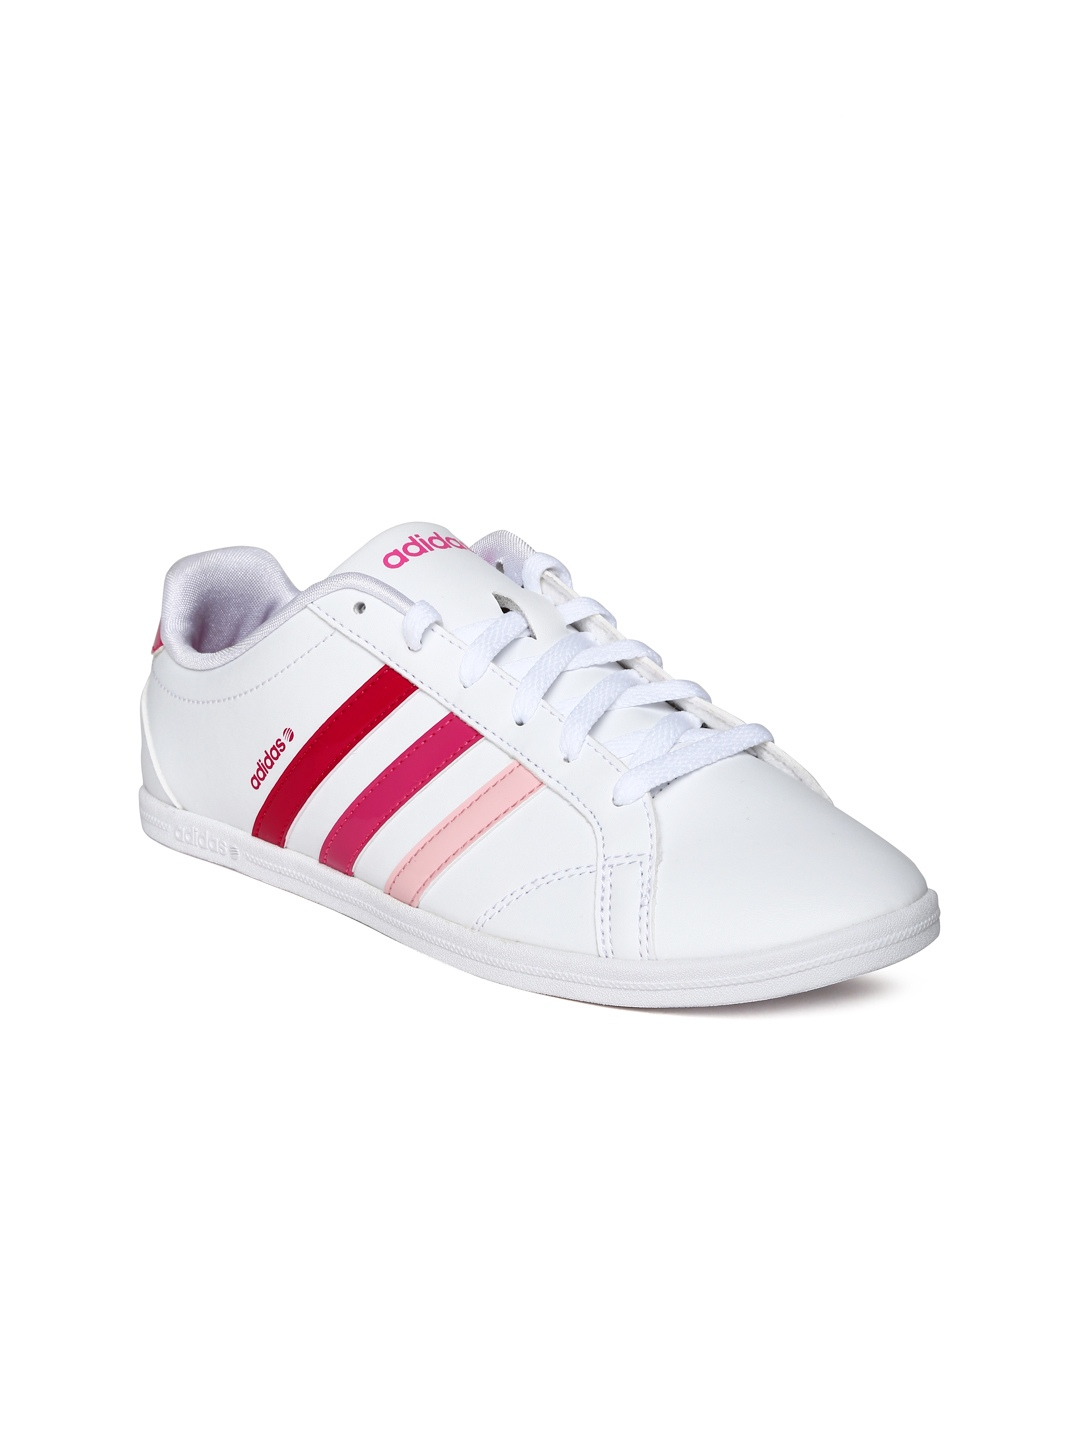 adidas neo white shoes for selfcavies co uk